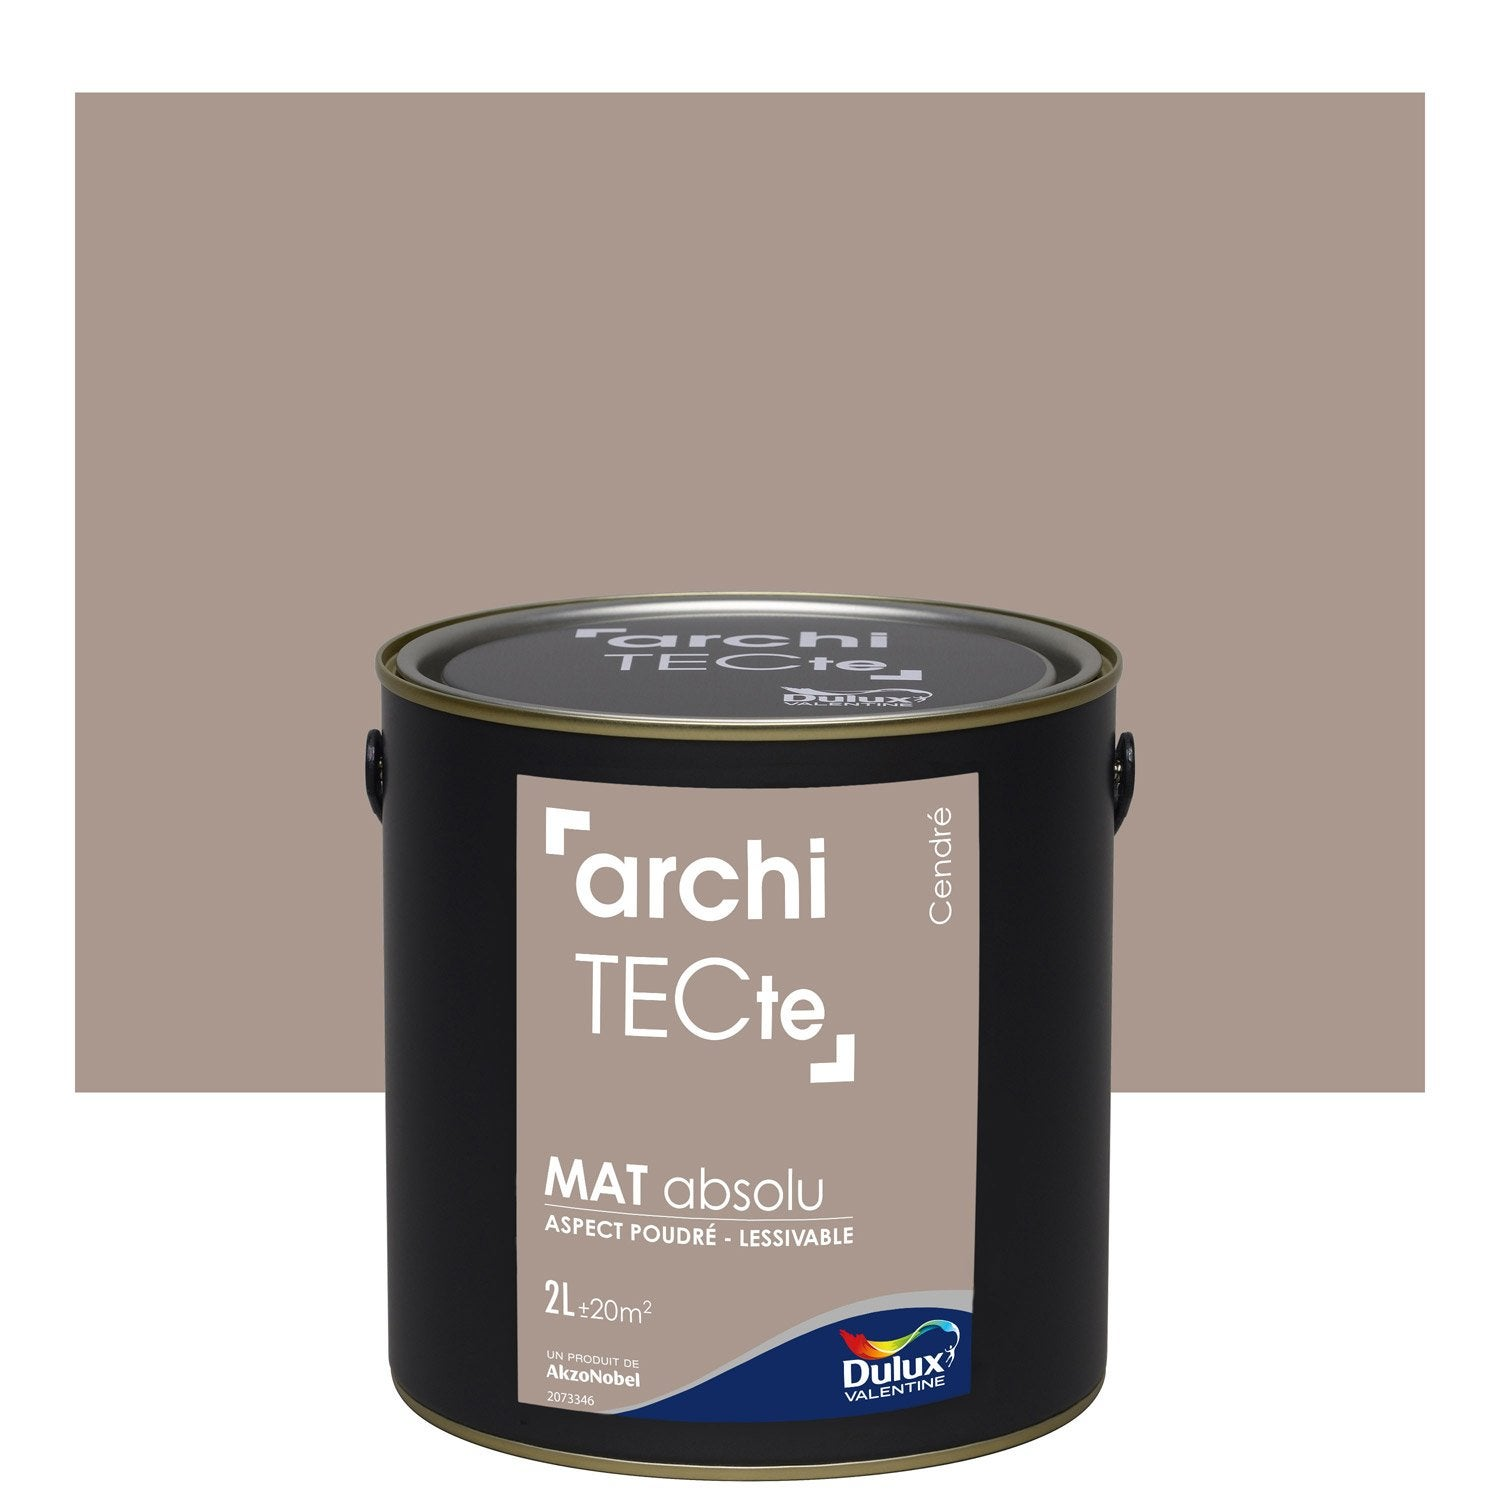 peinture gris cendre dulux valentine architecte 2 l leroy merlin. Black Bedroom Furniture Sets. Home Design Ideas